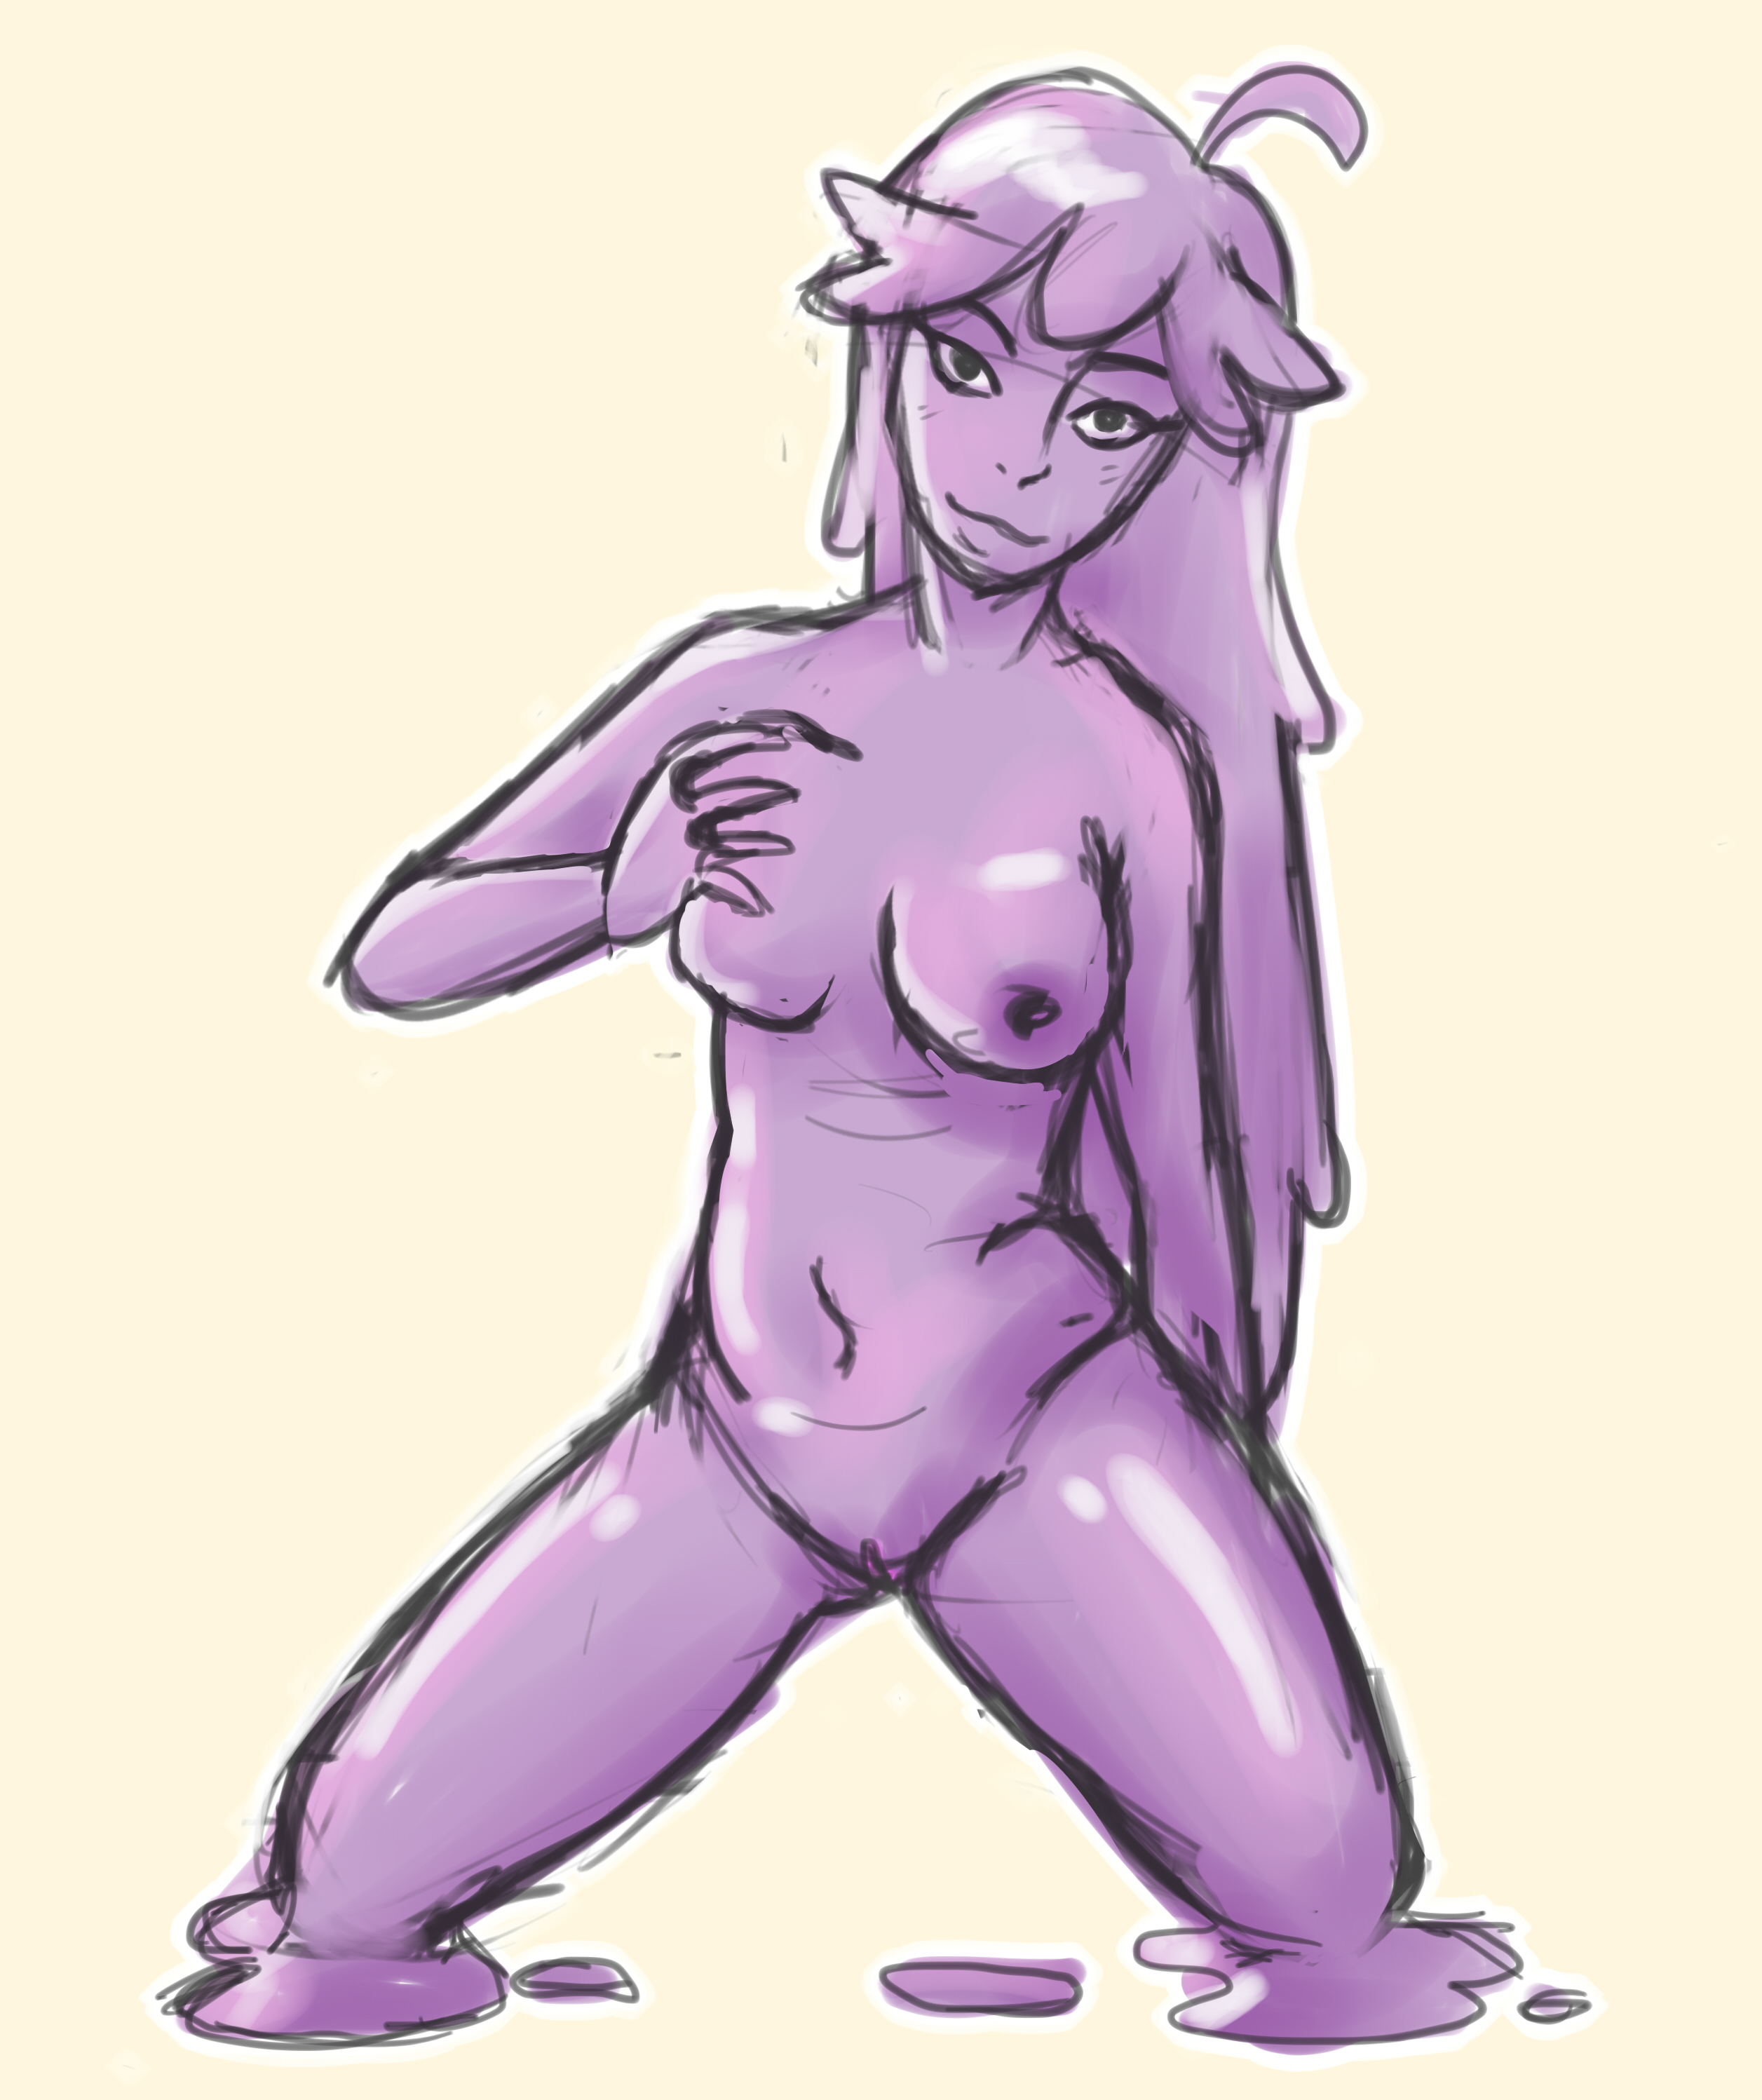 anther goo girl